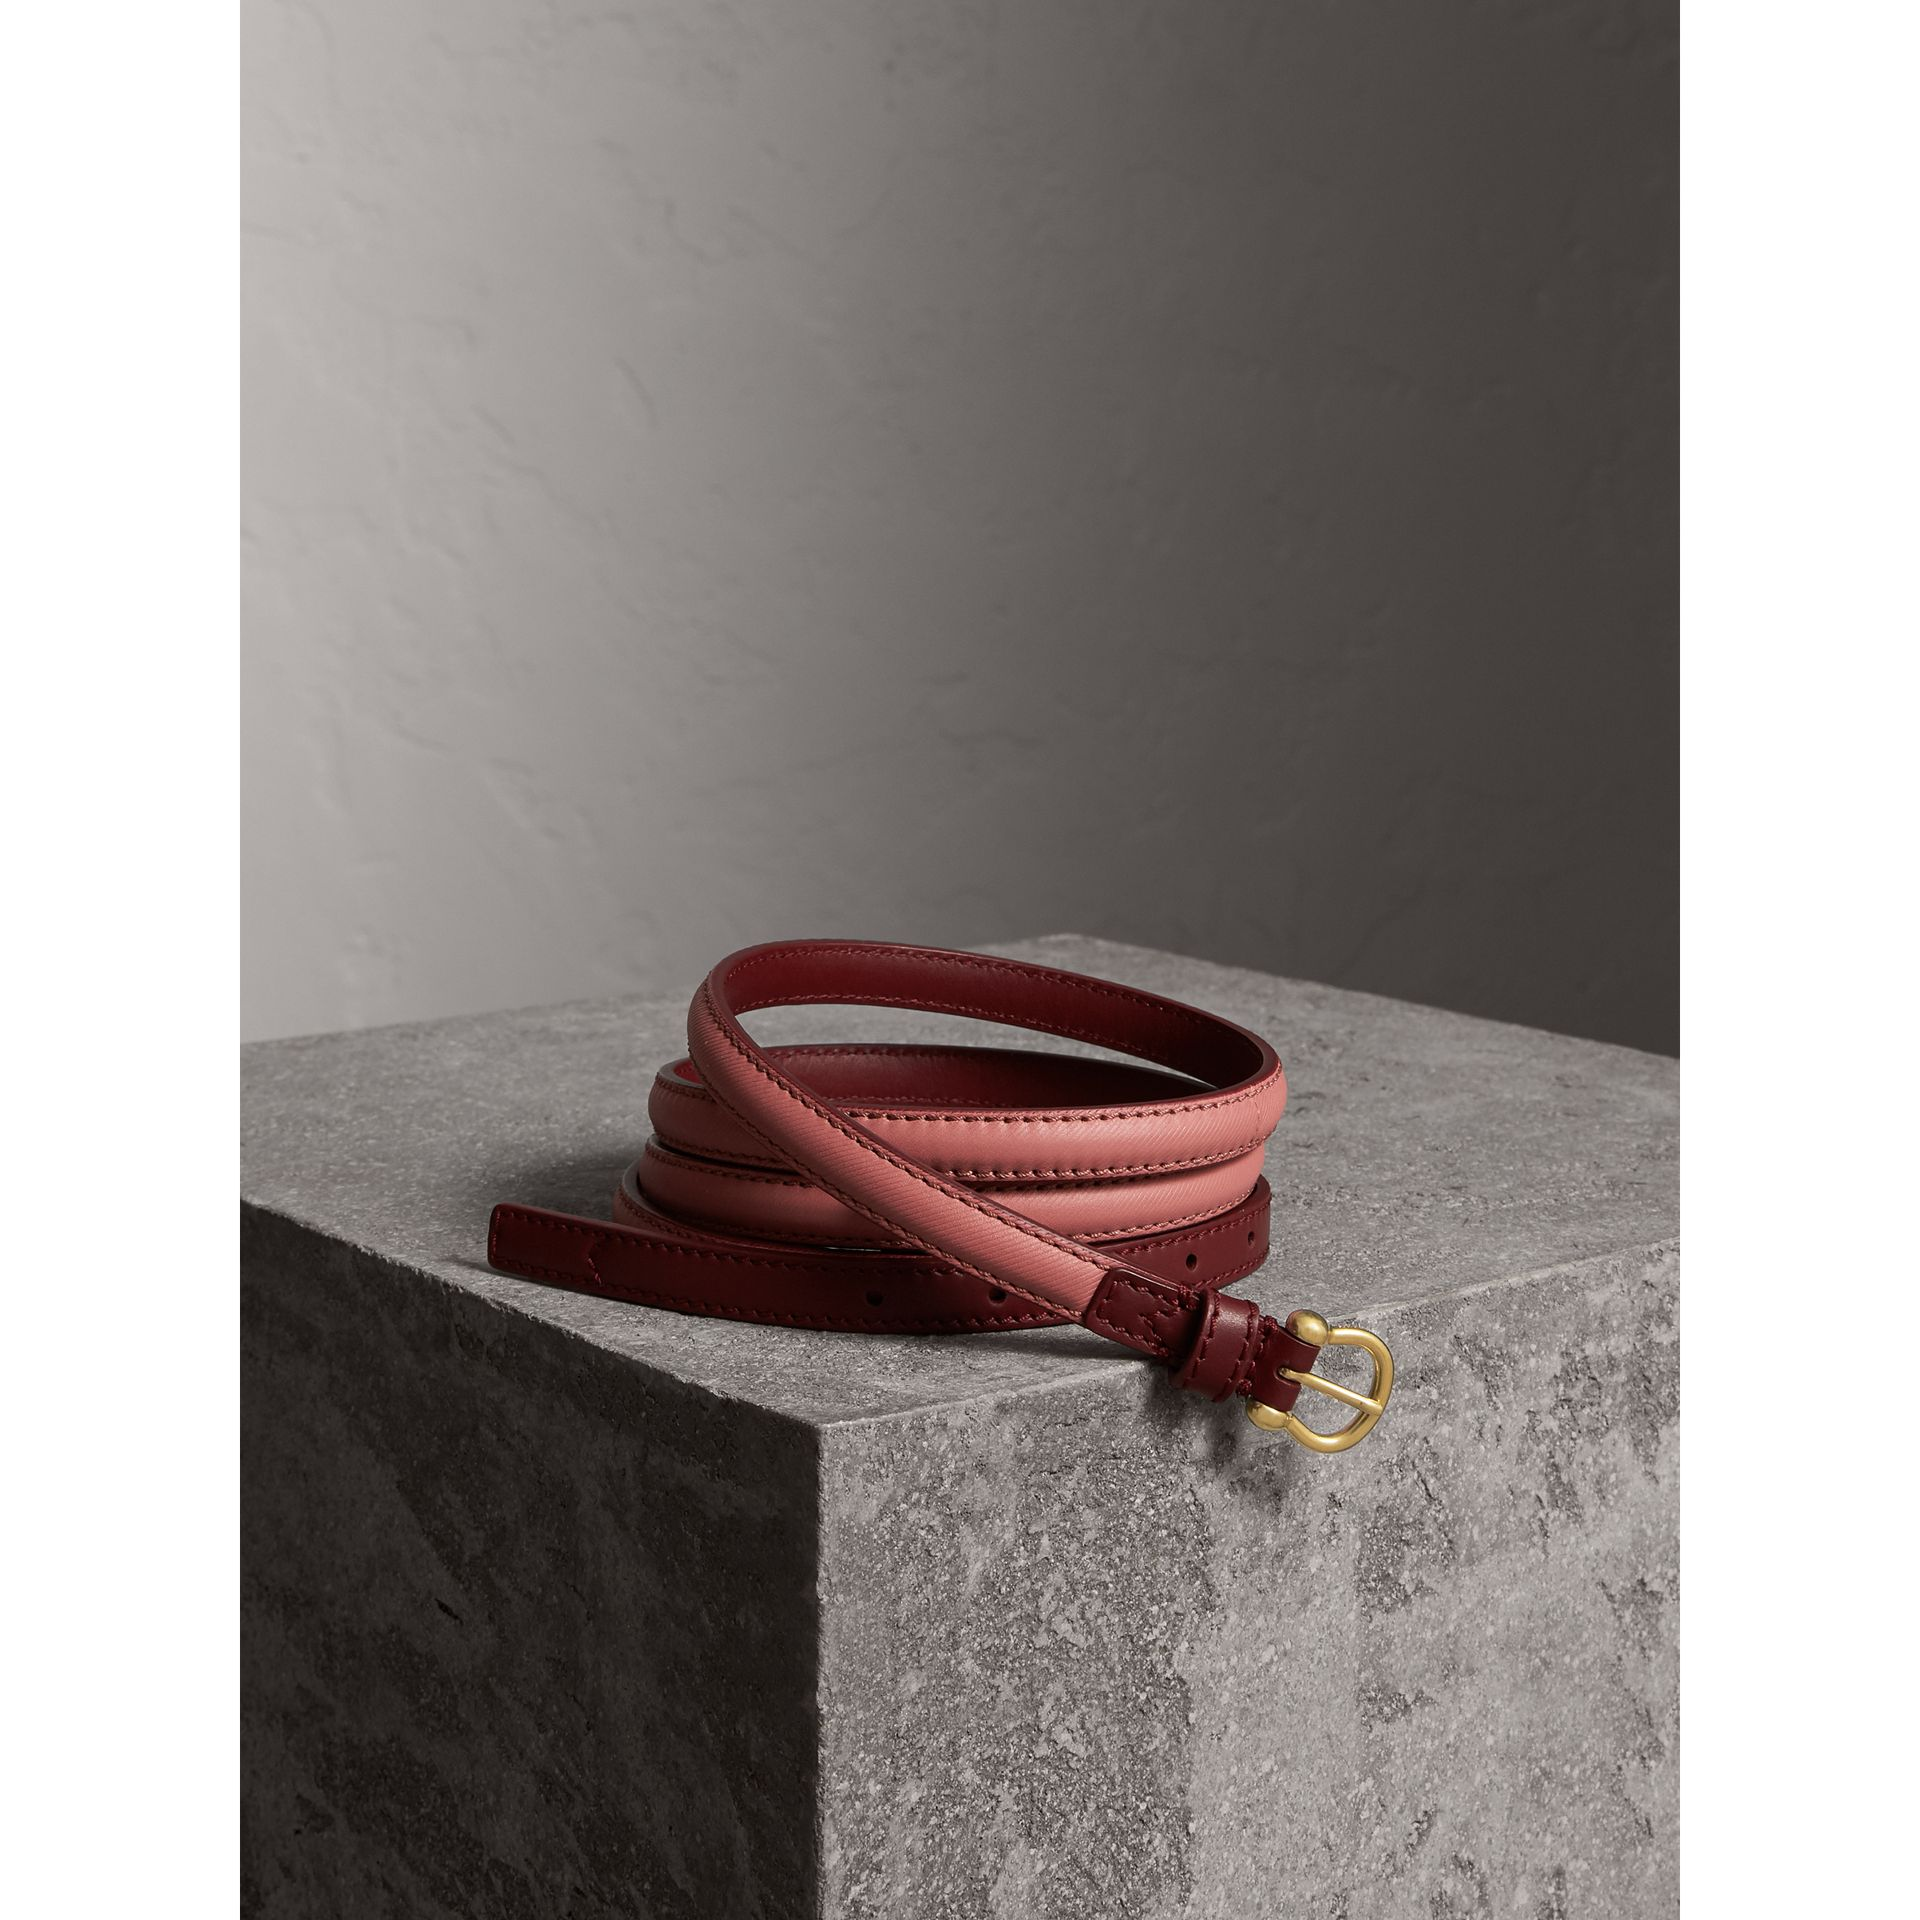 Ceinture en cuir trench bicolore (Rose Blossom/rouge Antique) - Femme | Burberry - photo de la galerie 1